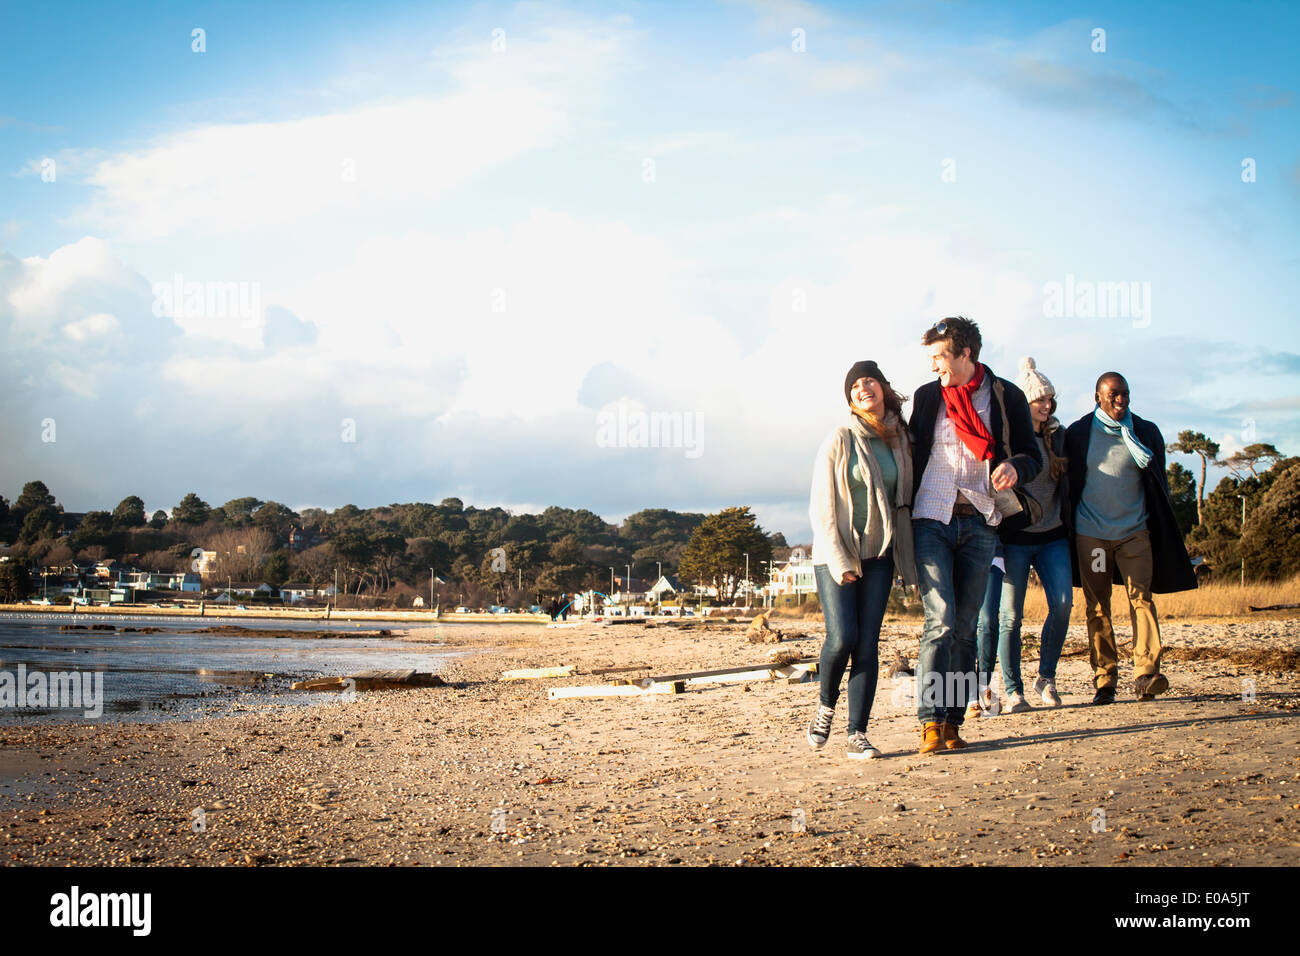 Five adult friends out walking on the beach - Stock Image